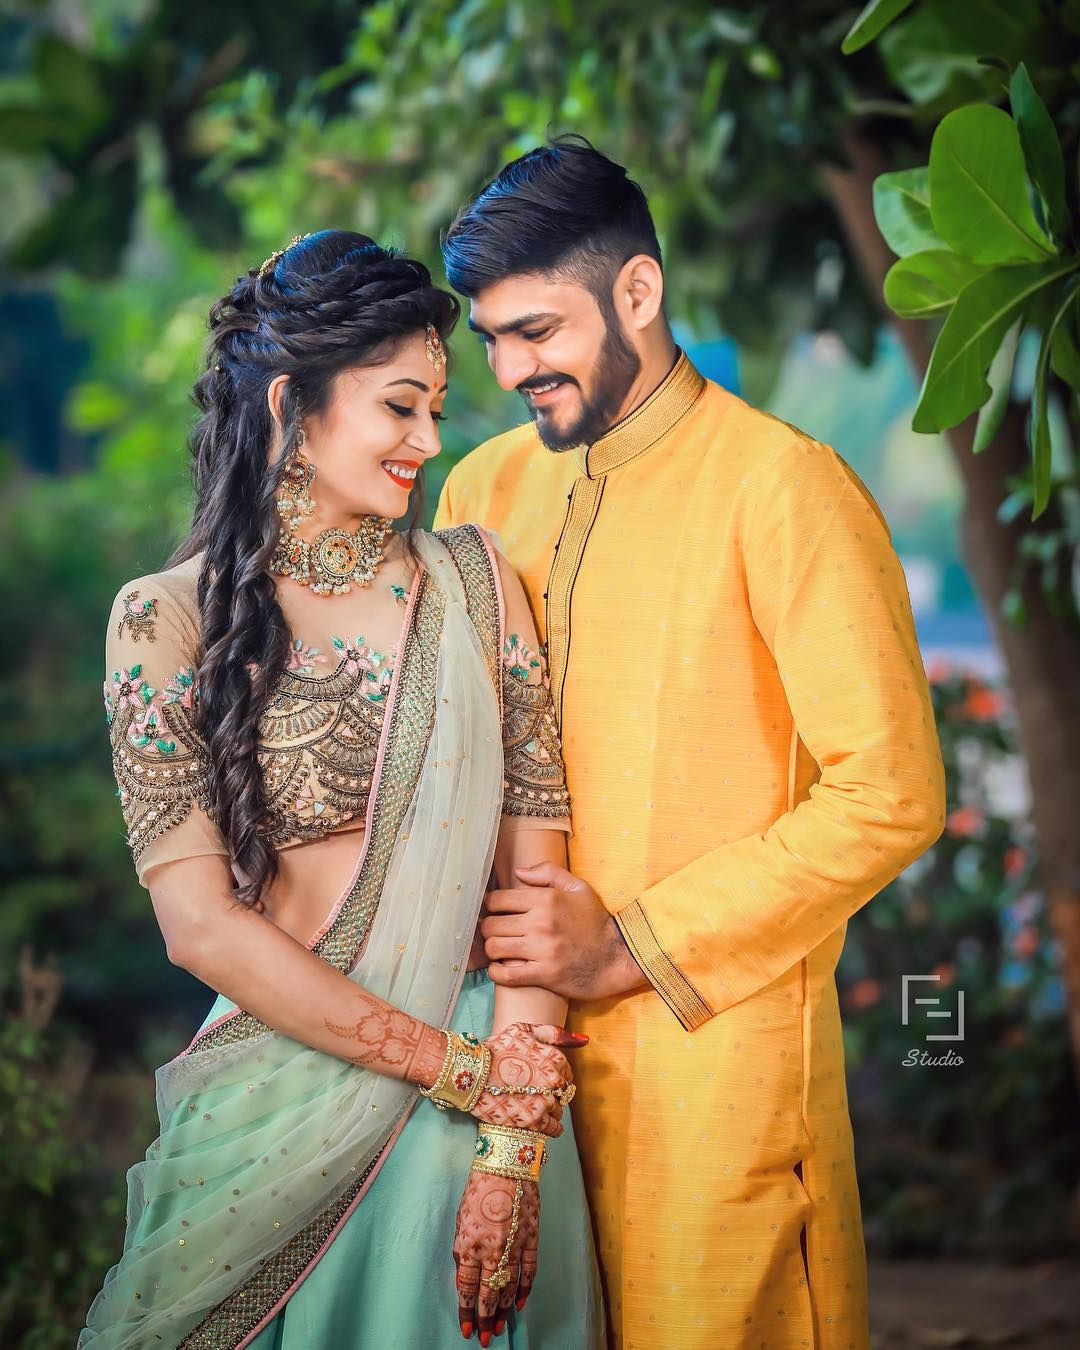 Outfits Wedding Couple Poses Photography Indian Wedding